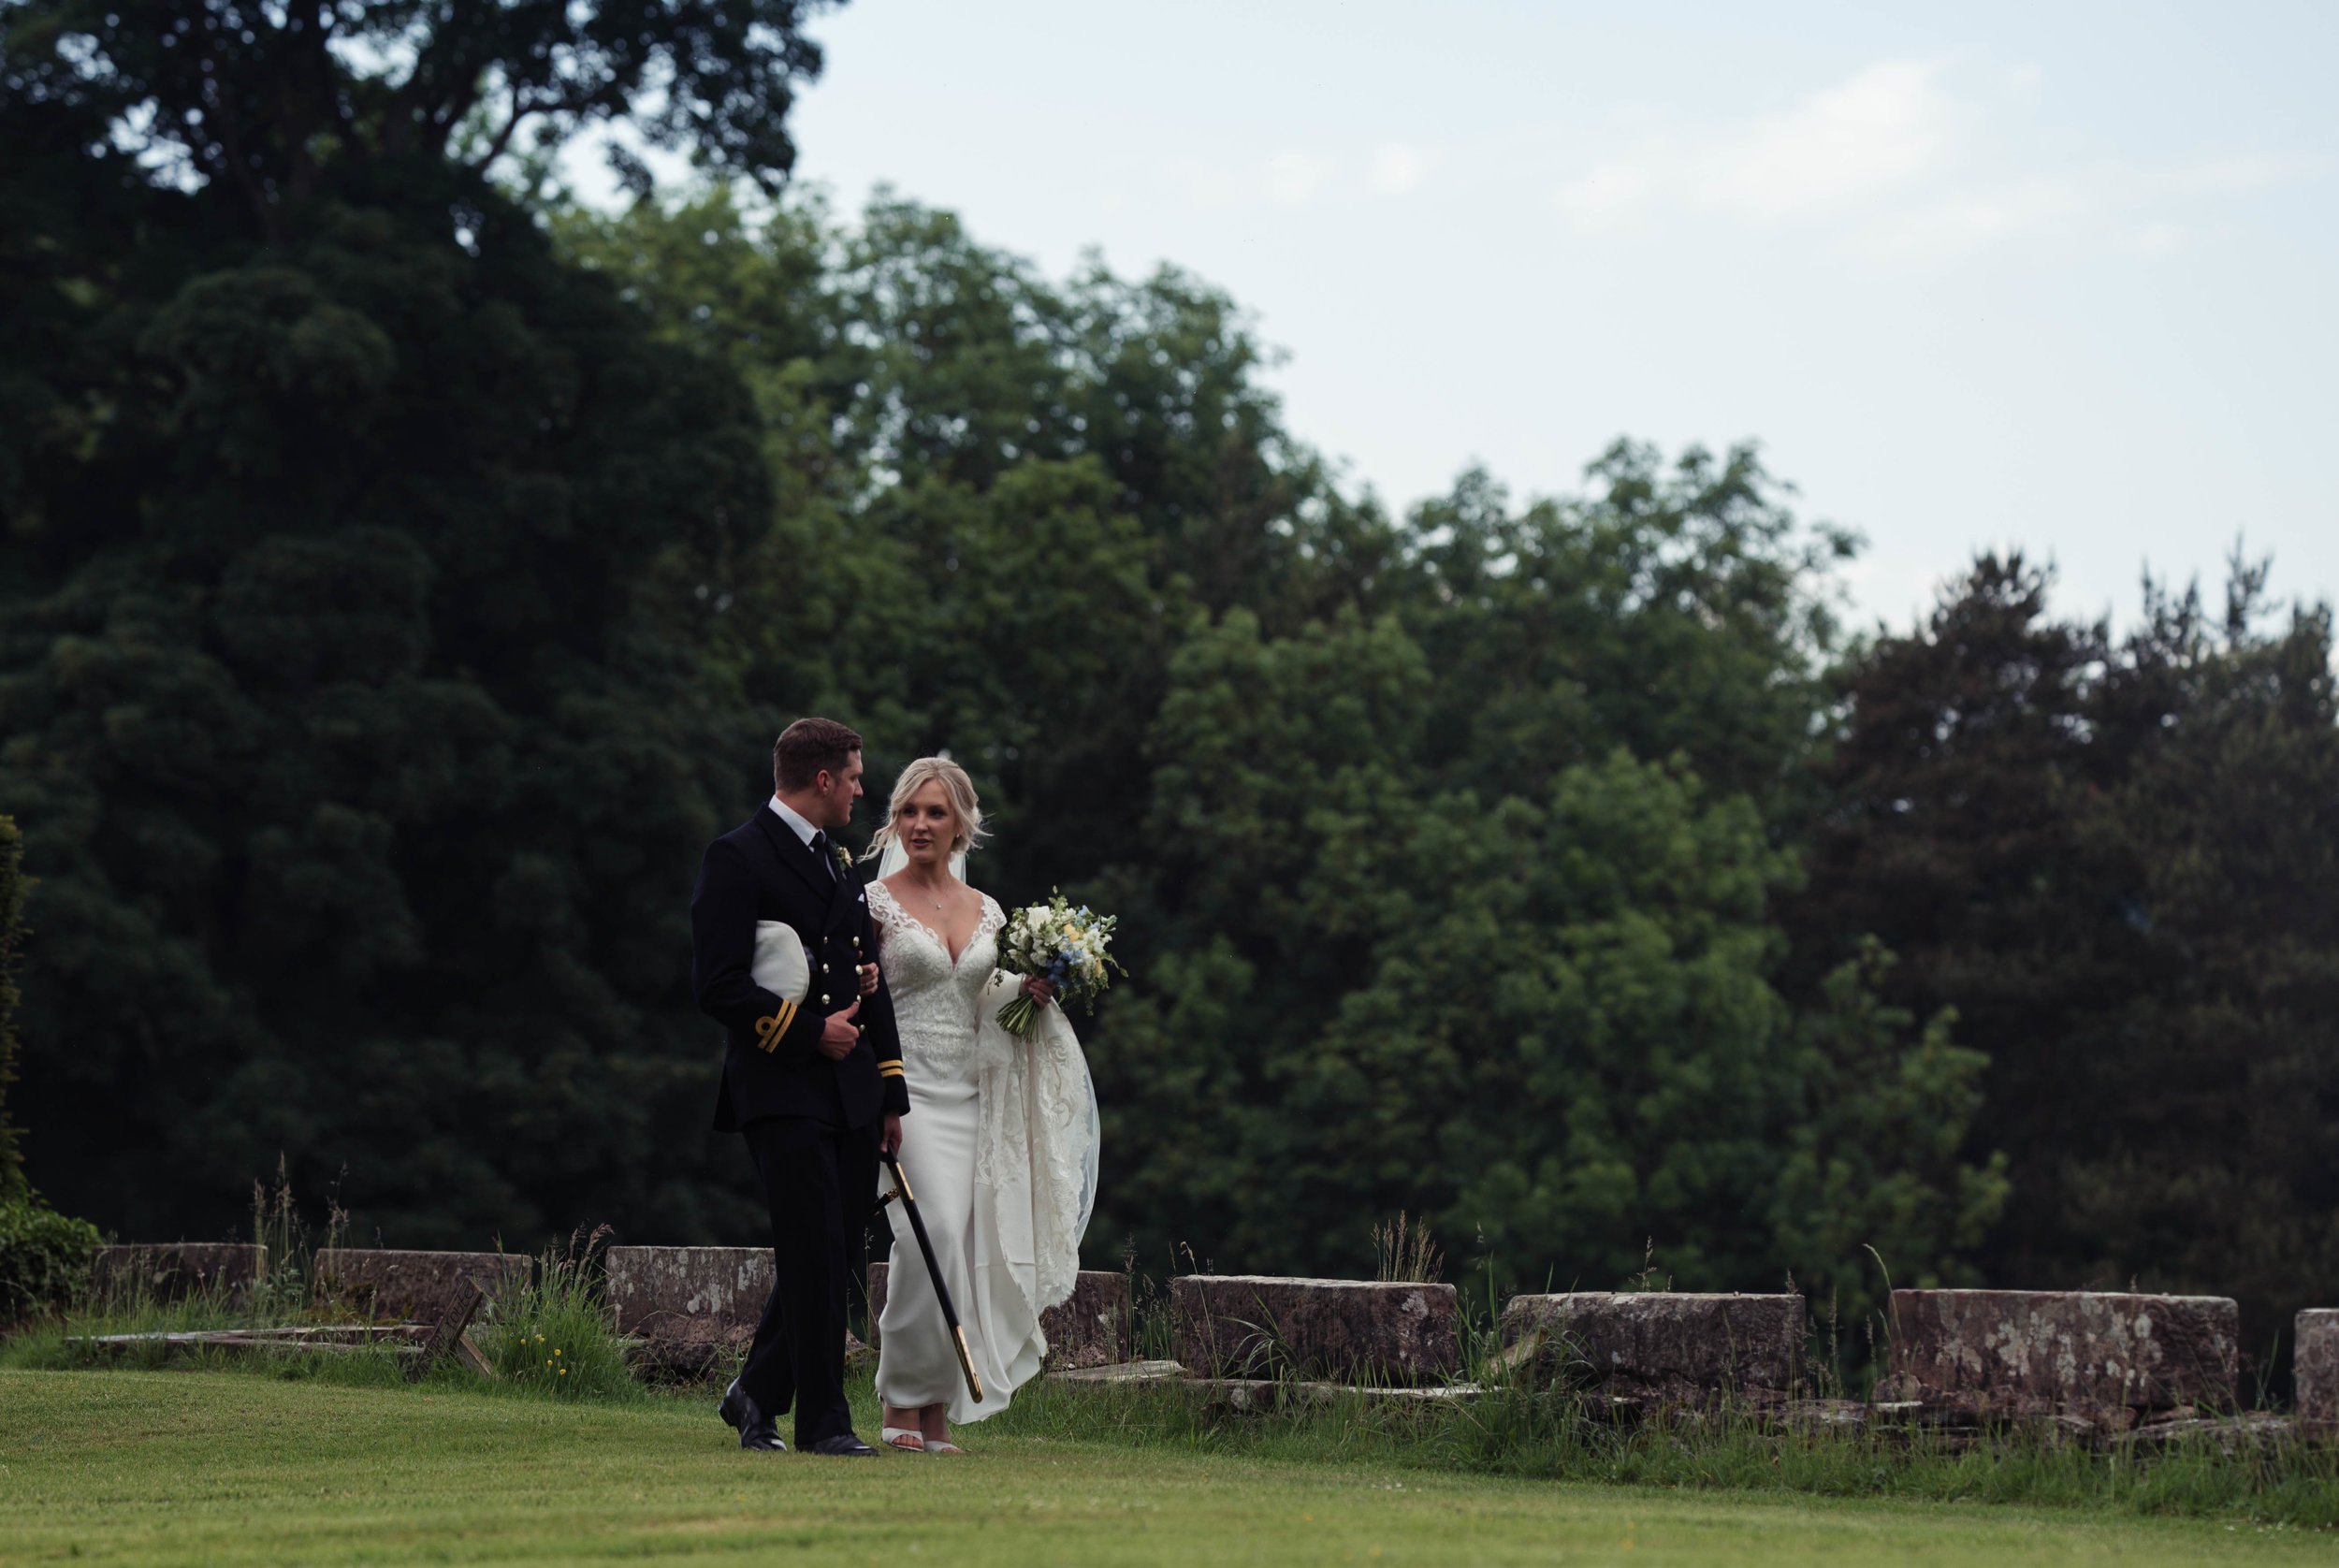 The bride and groom have a walk around the grounds at Askham Hall